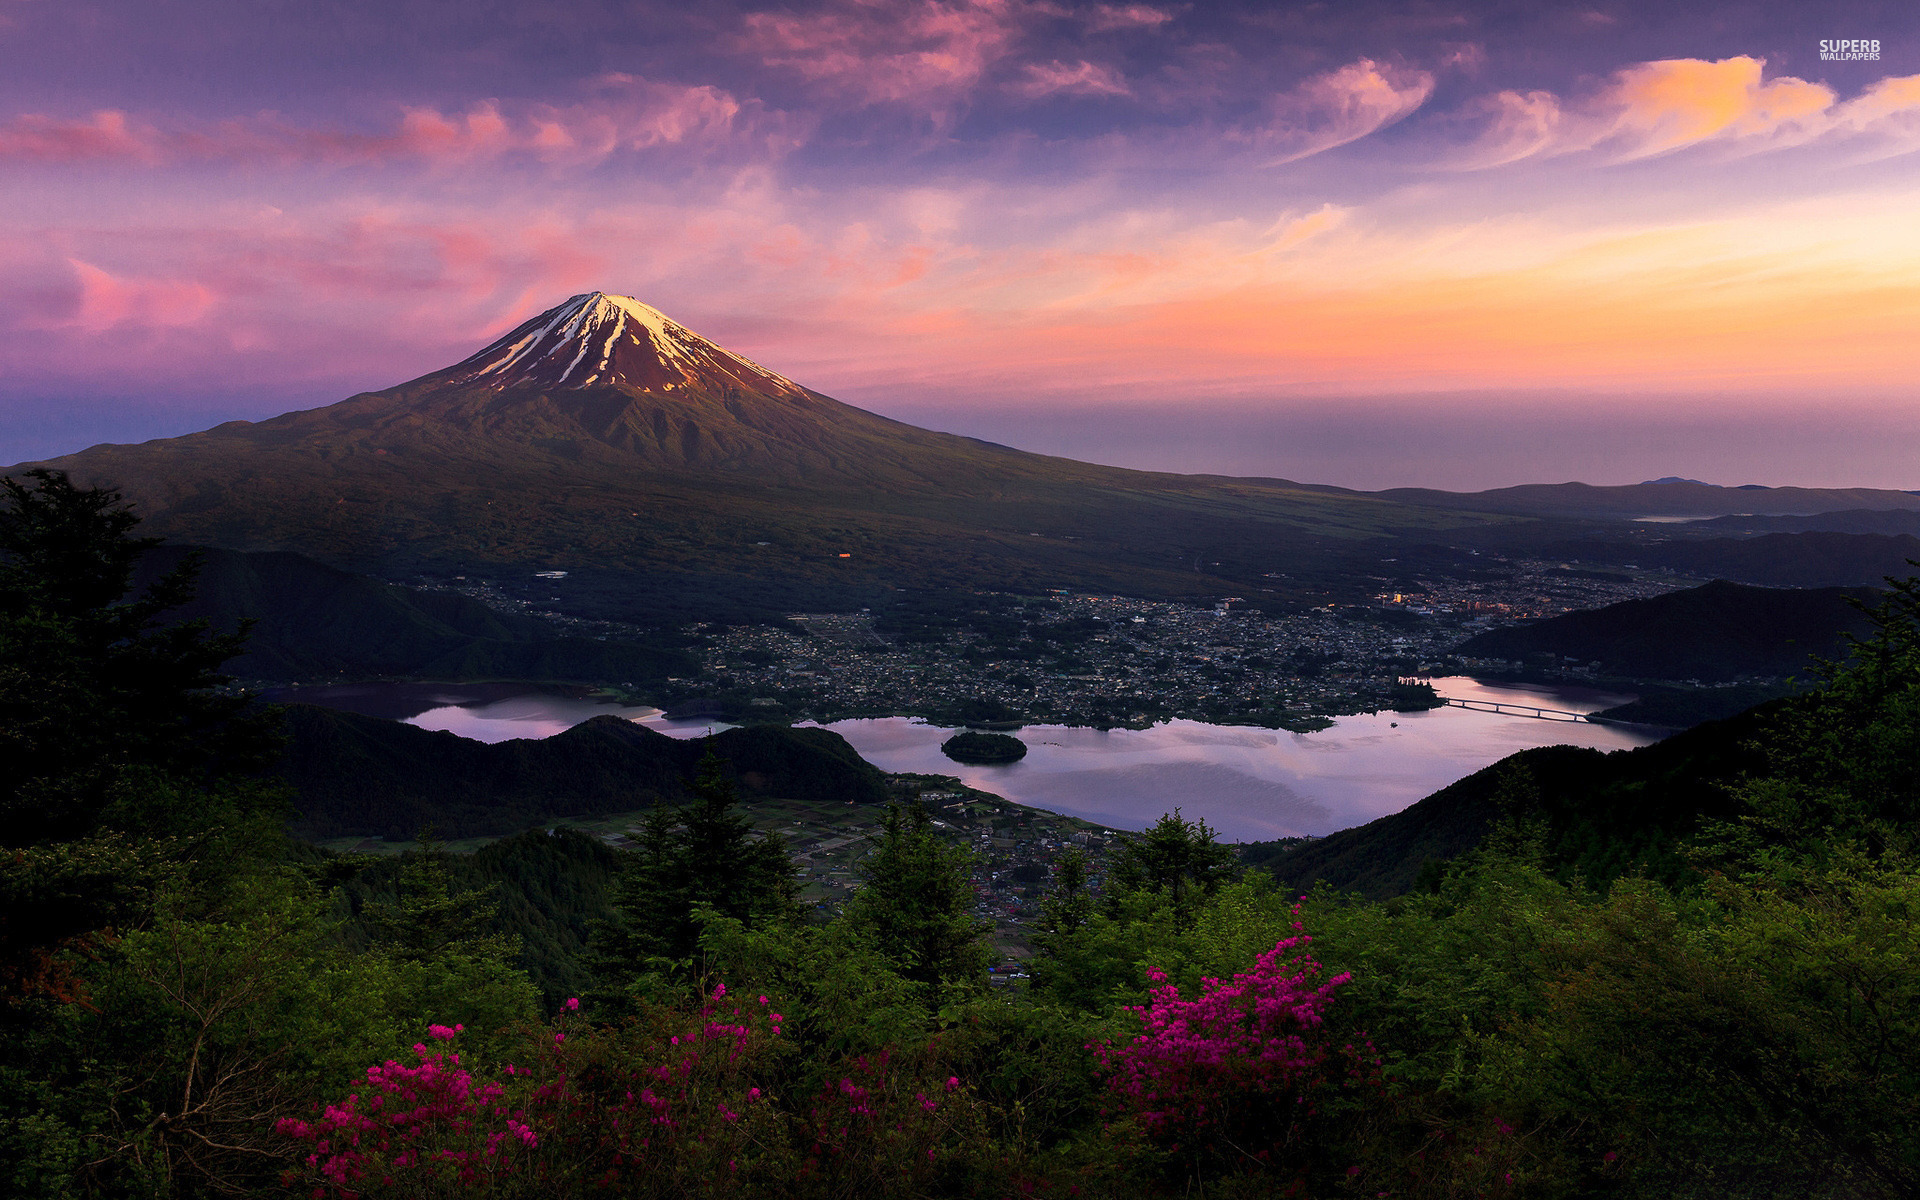 Mount Fuji Japan  city images : Mount Fuji Japan Asia wallpapers | Mount Fuji Japan Asia stock photos